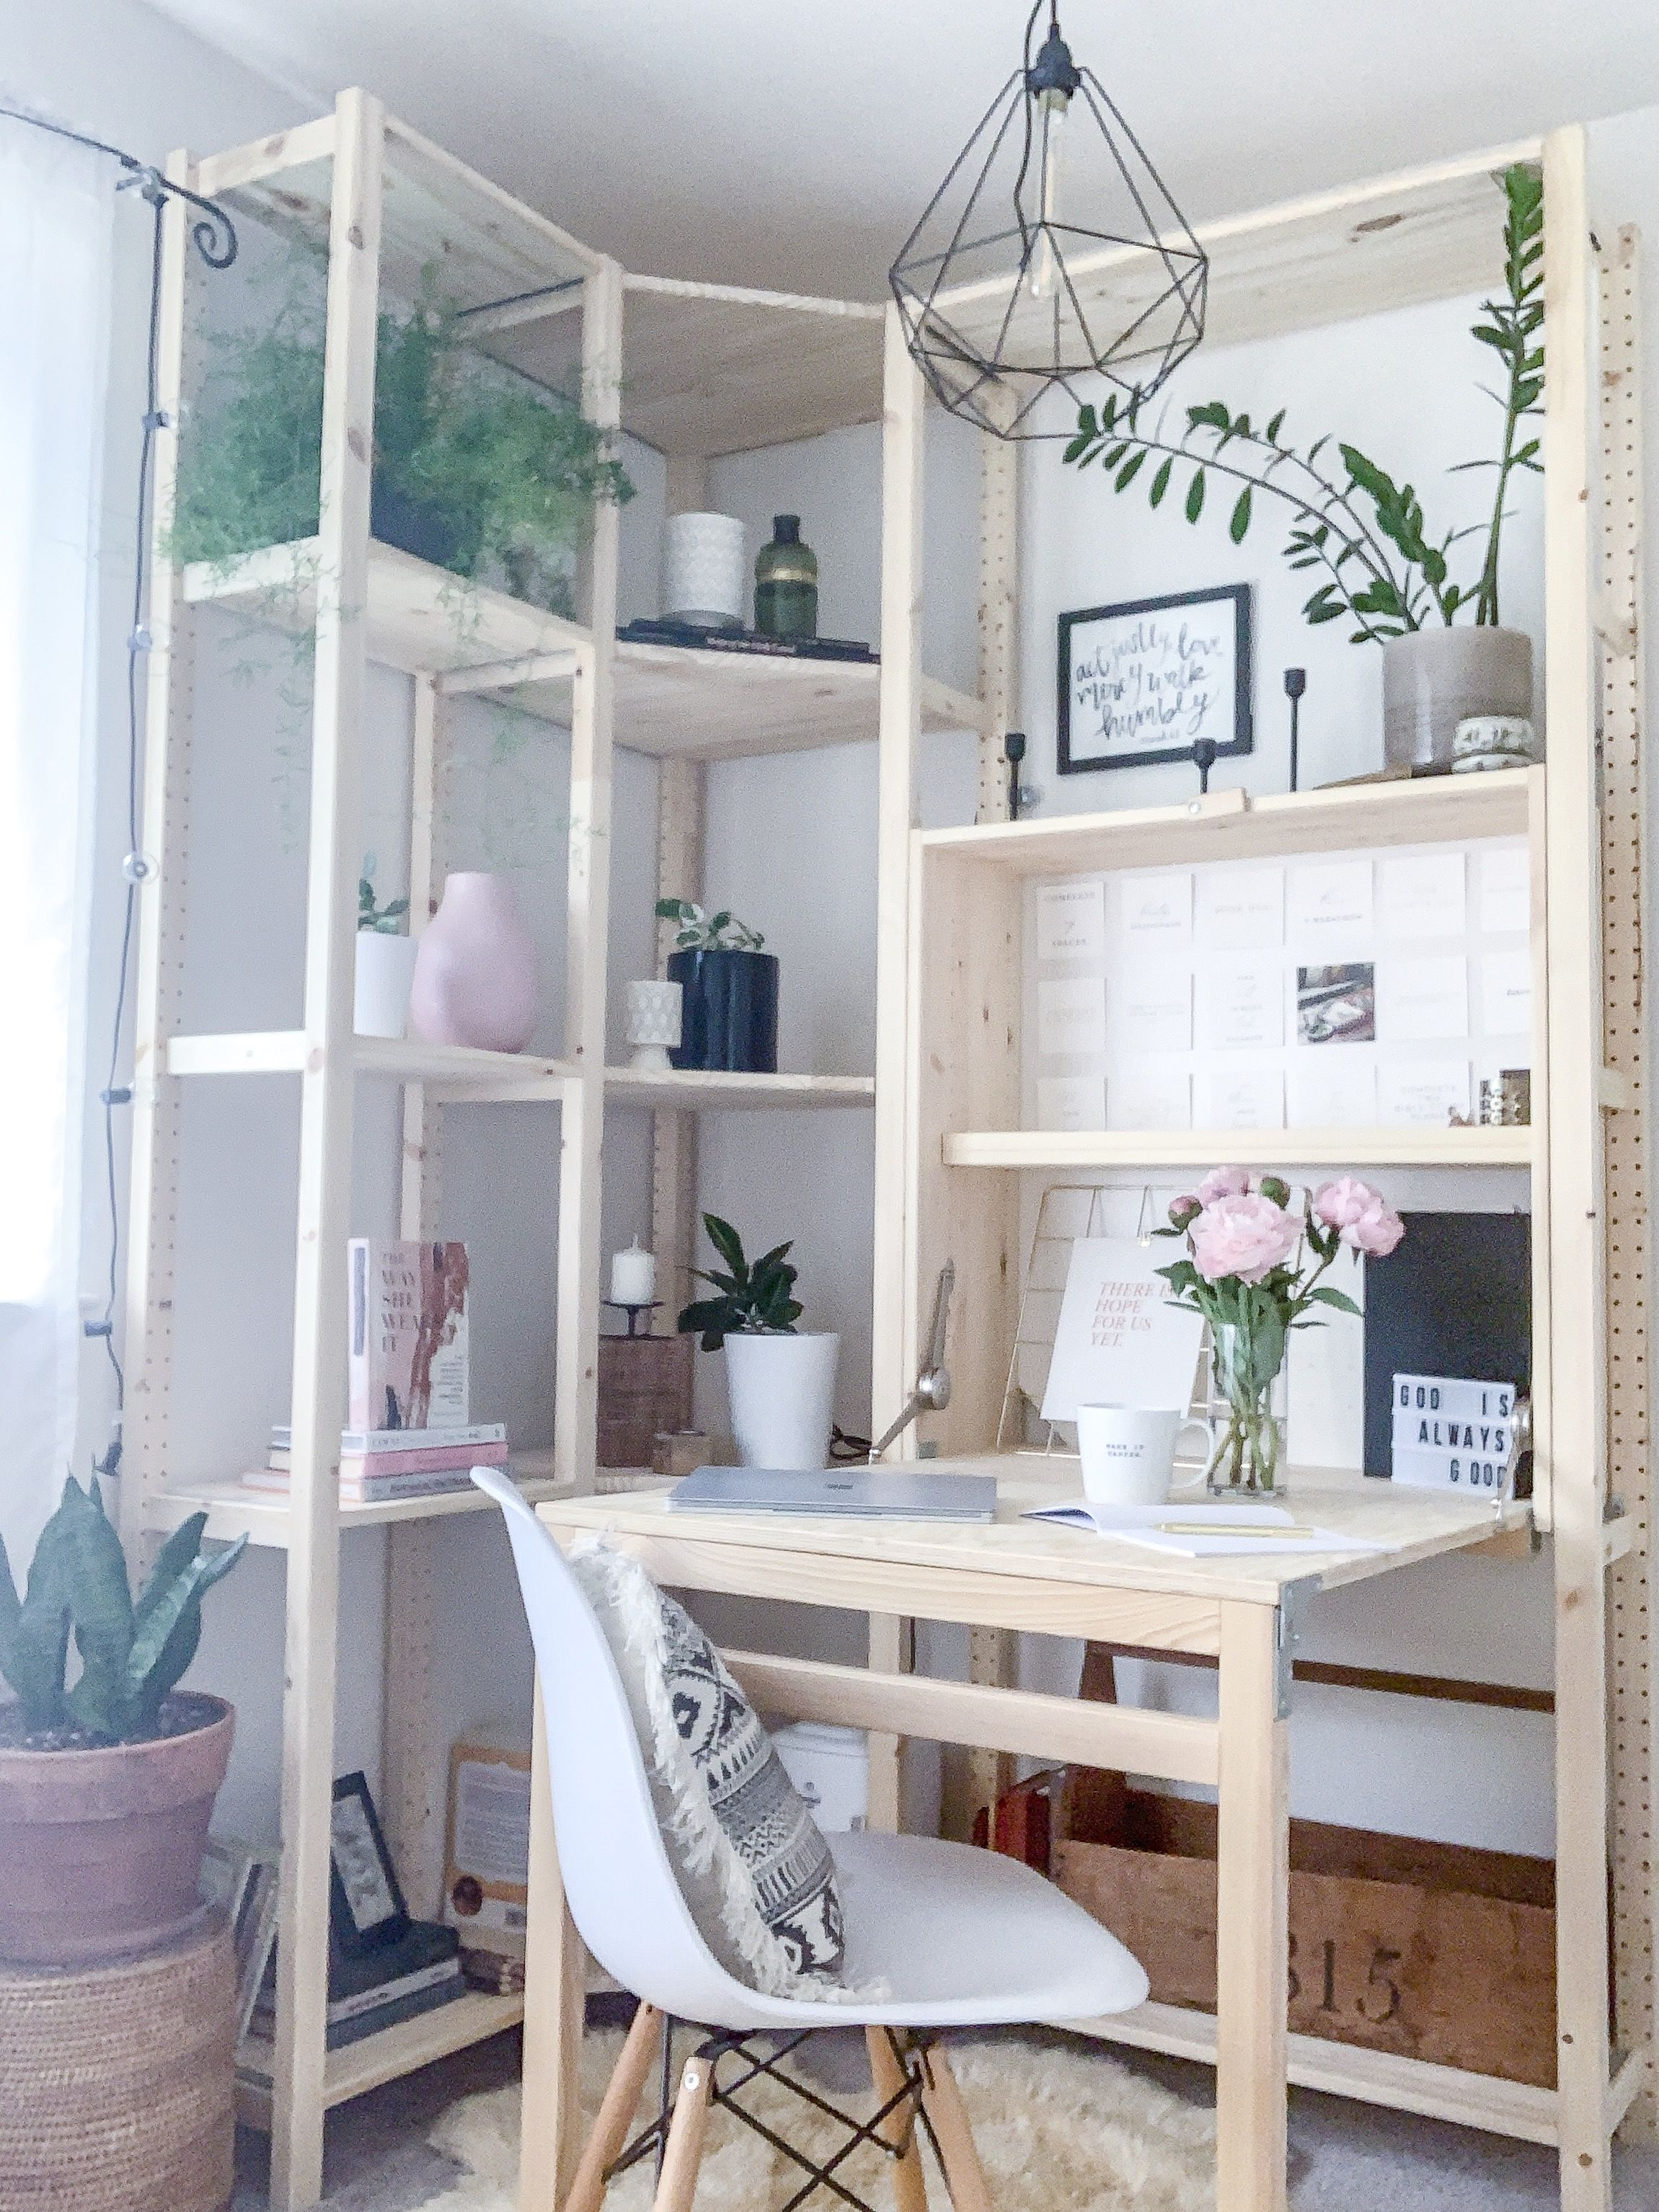 Bedroom Makeover featuring the IKEA IVAR Shelves